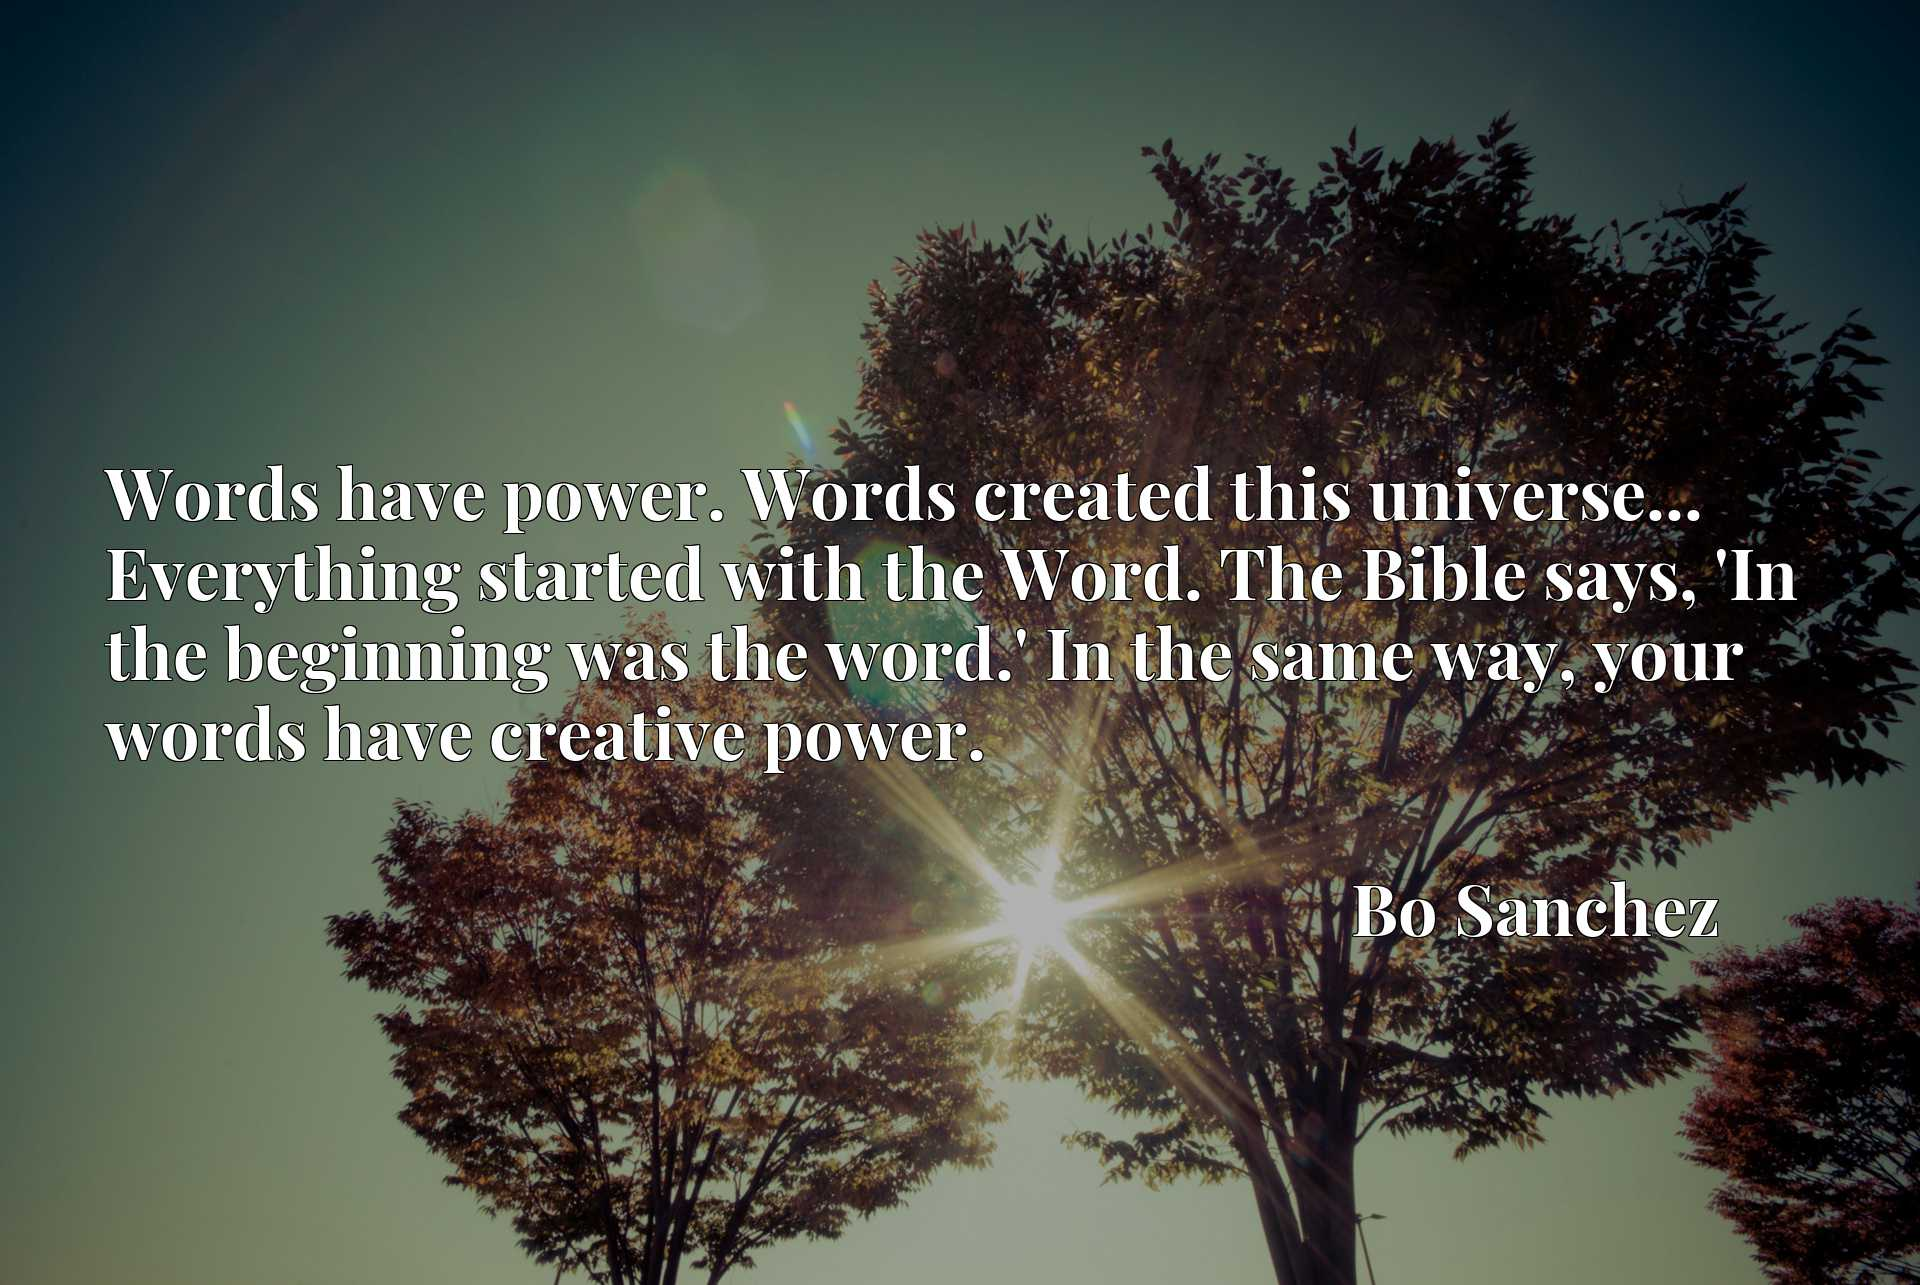 Words have power. Words created this universe... Everything started with the Word. The Bible says, 'In the beginning was the word.' In the same way, your words have creative power.